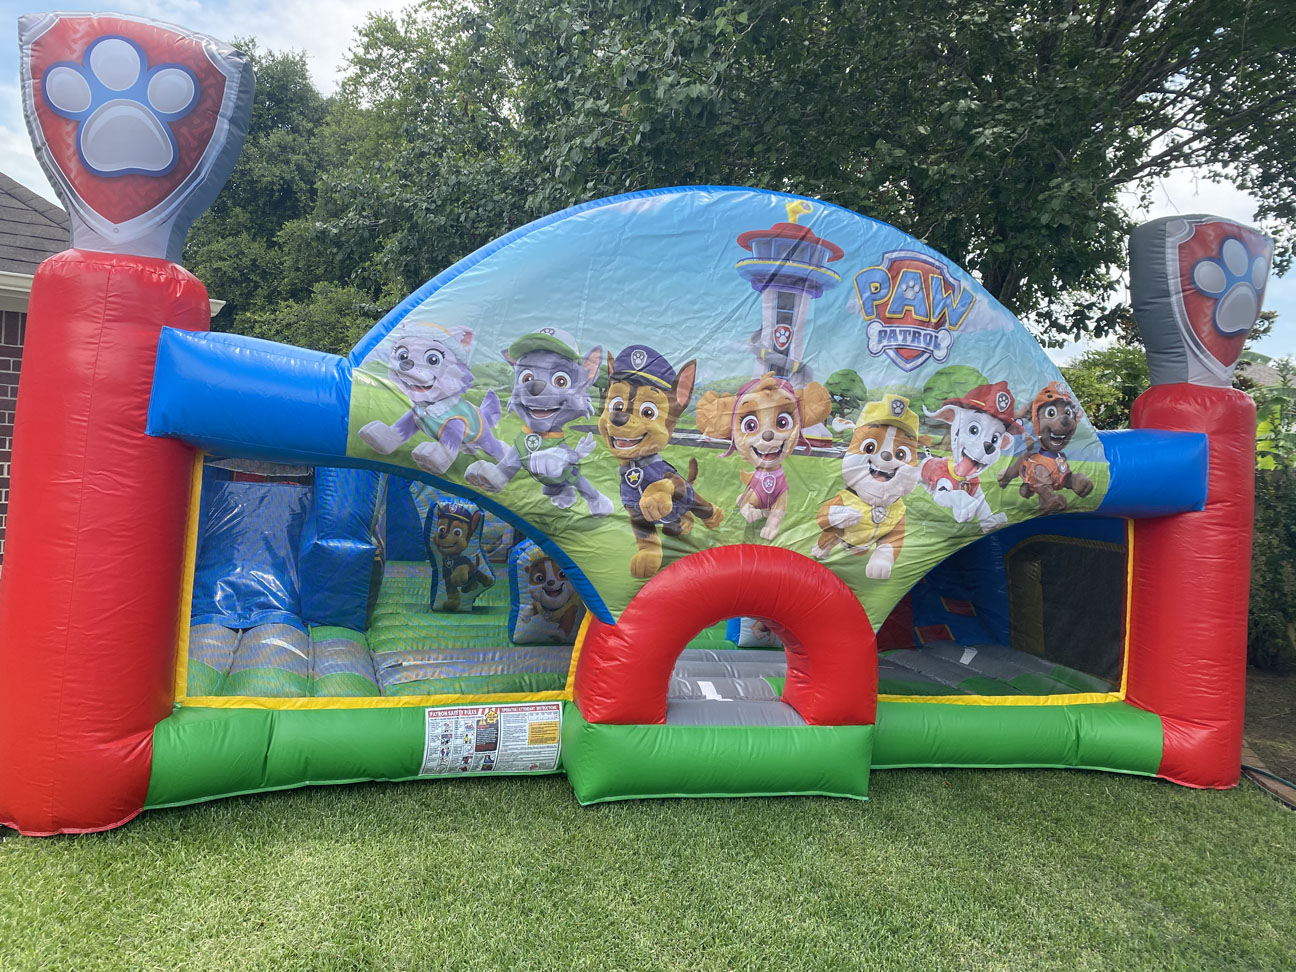 Paw Patrol bounce houses near me